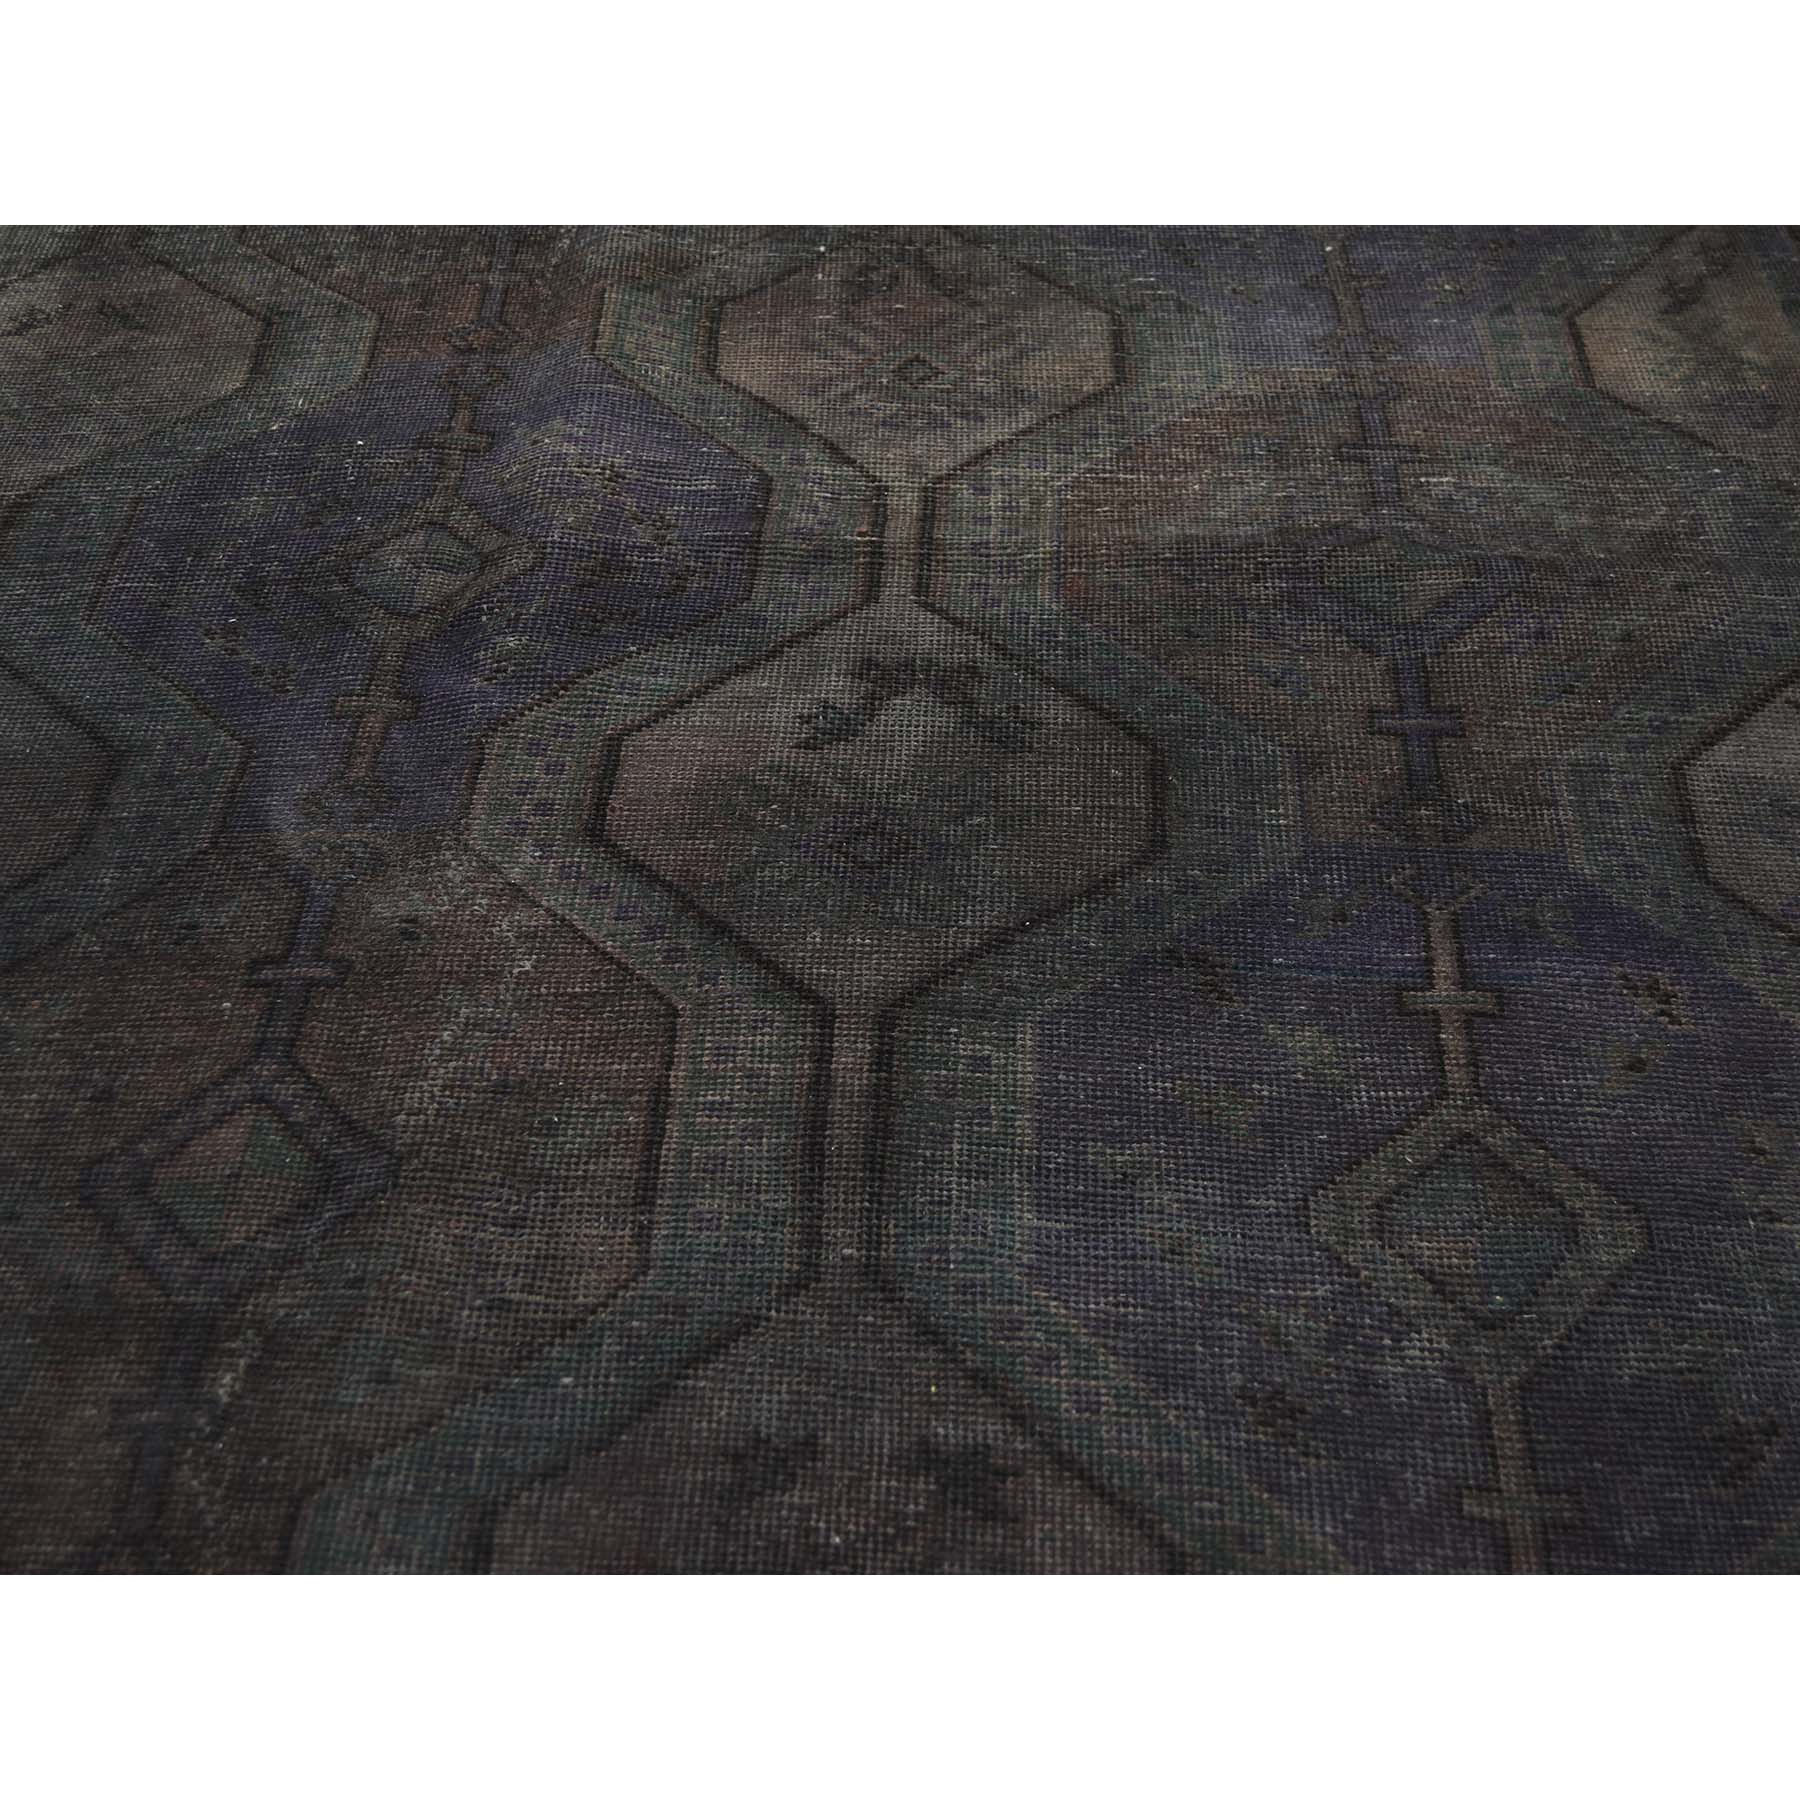 6-10--x9-8-- Hand Knotted Vintage Overdyed Persian Shiraz Oriental Rug